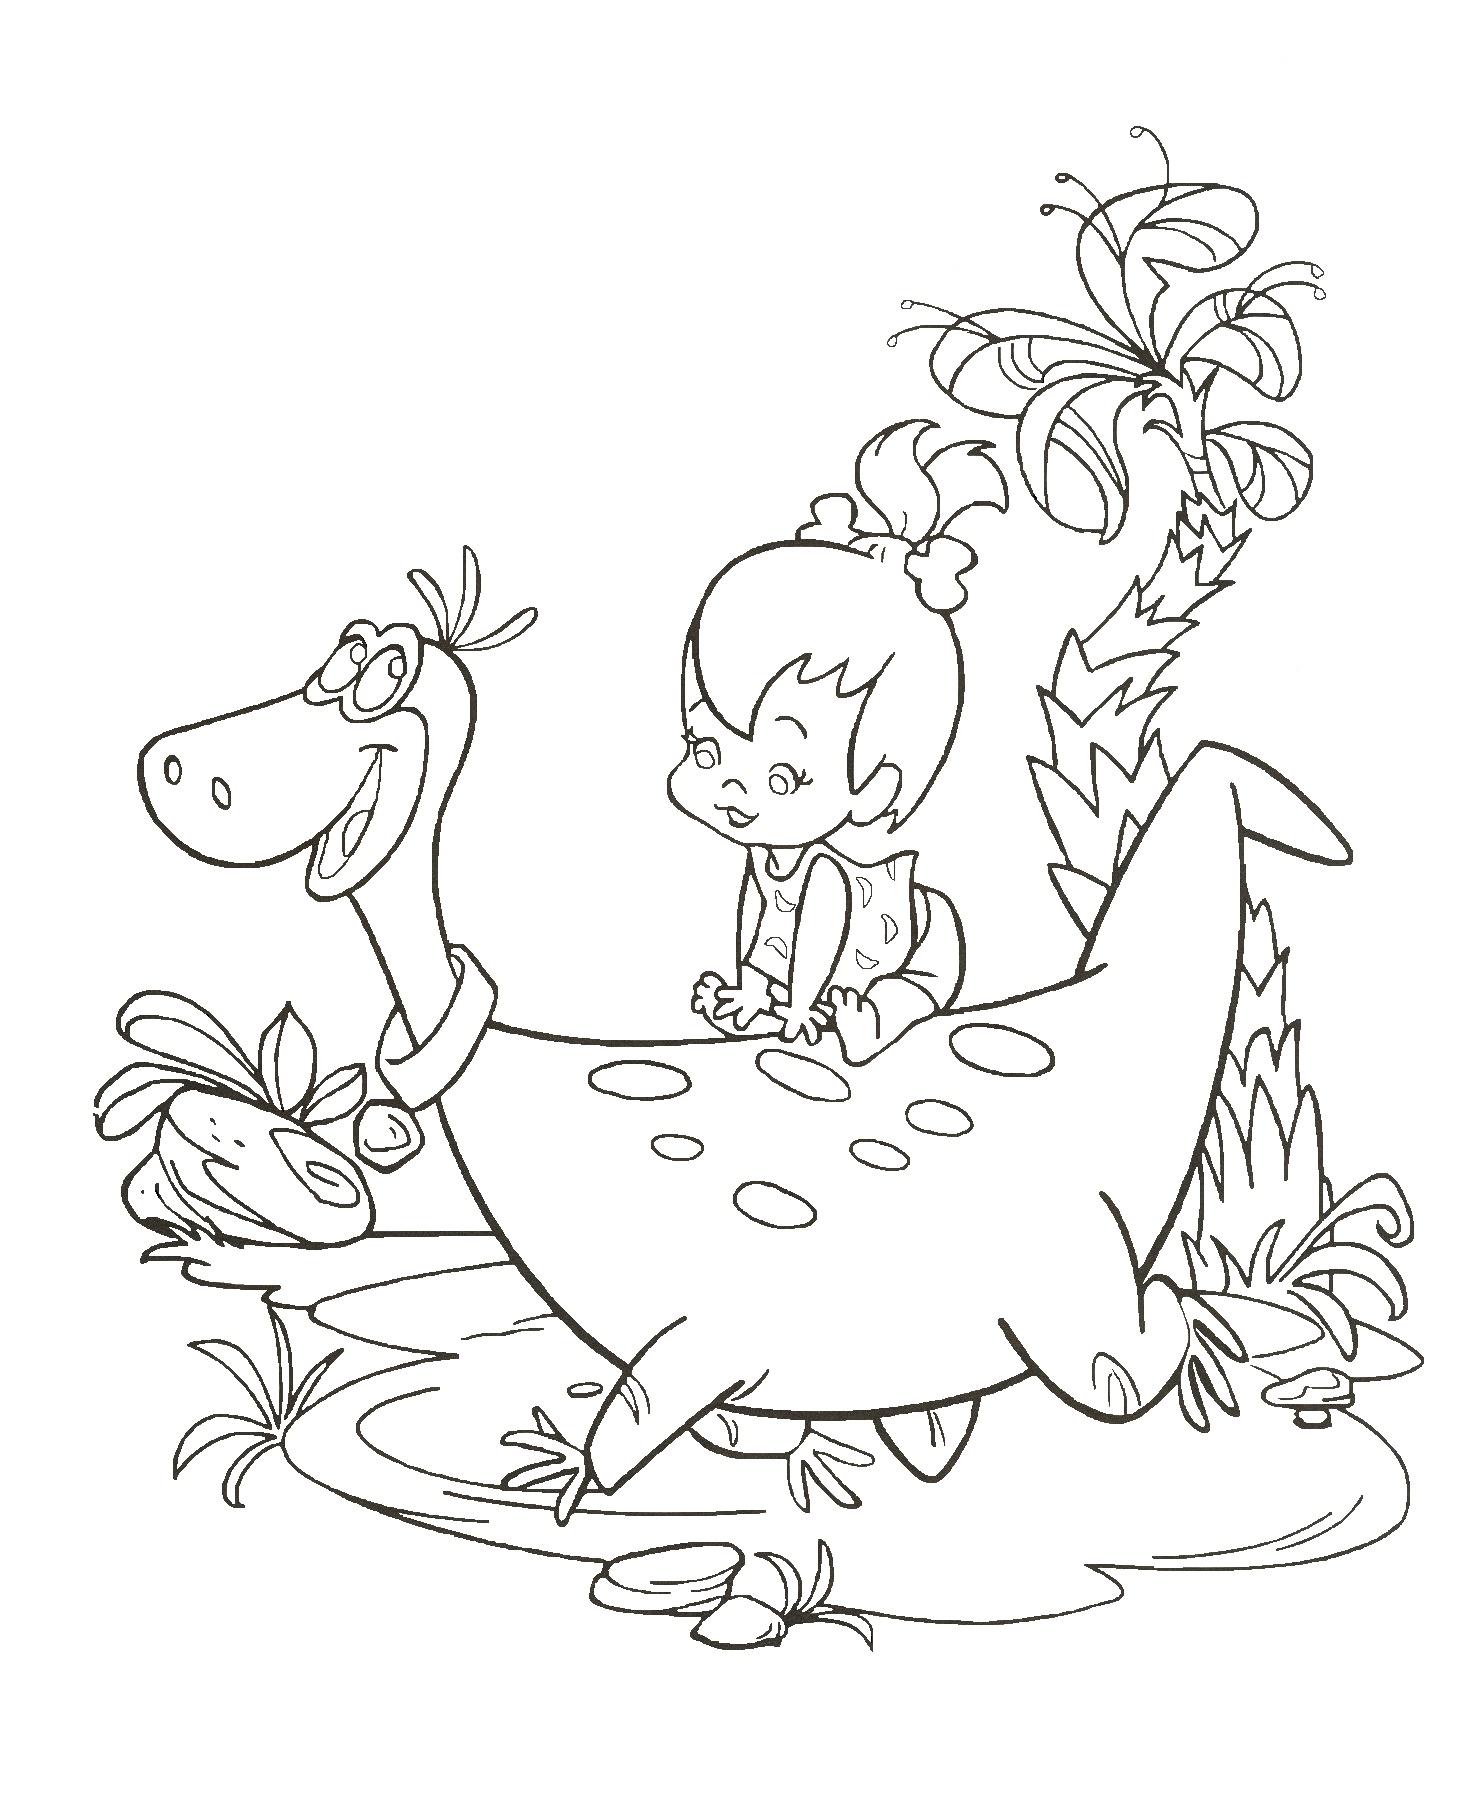 Dinosaur Coloring Pages for Girls